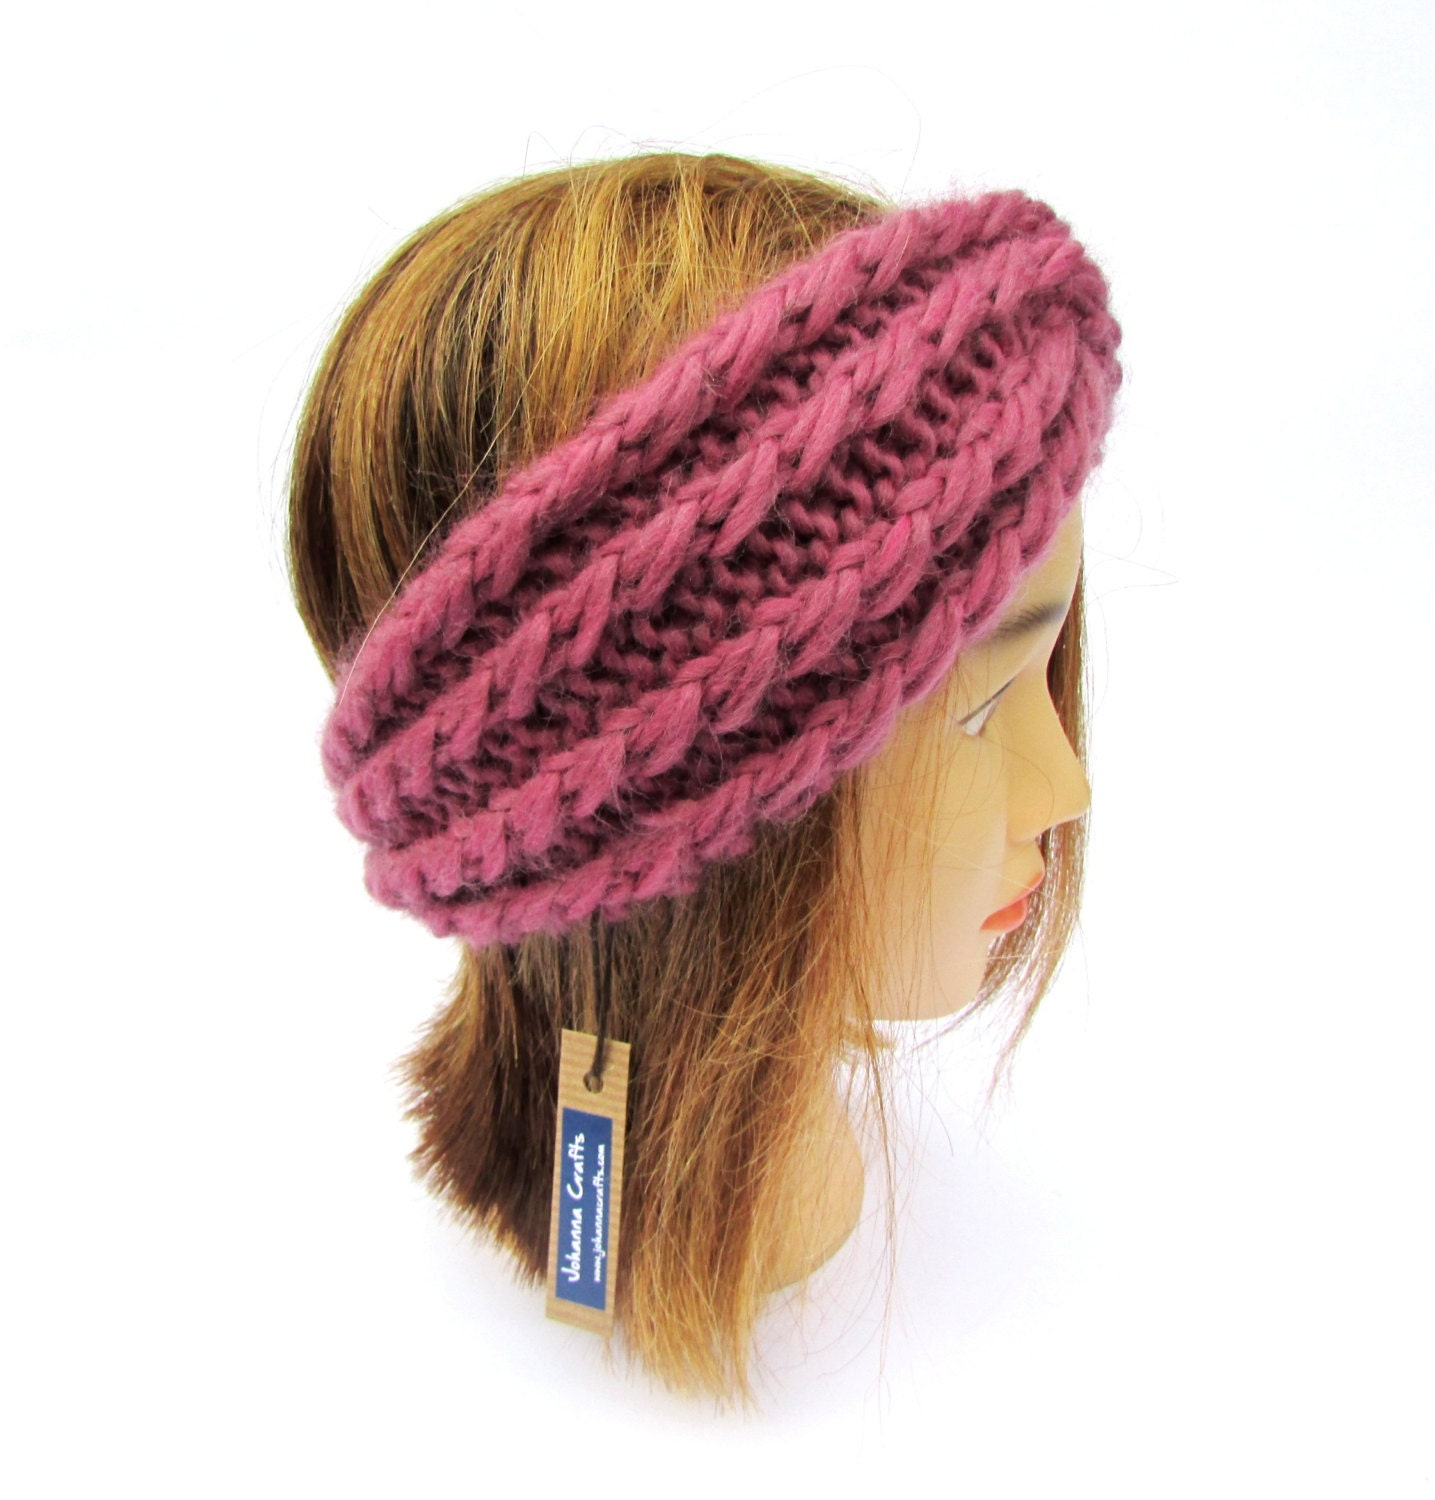 Twisted Headband Knit Pattern : Twisted headband old pink knit headband knitted antique